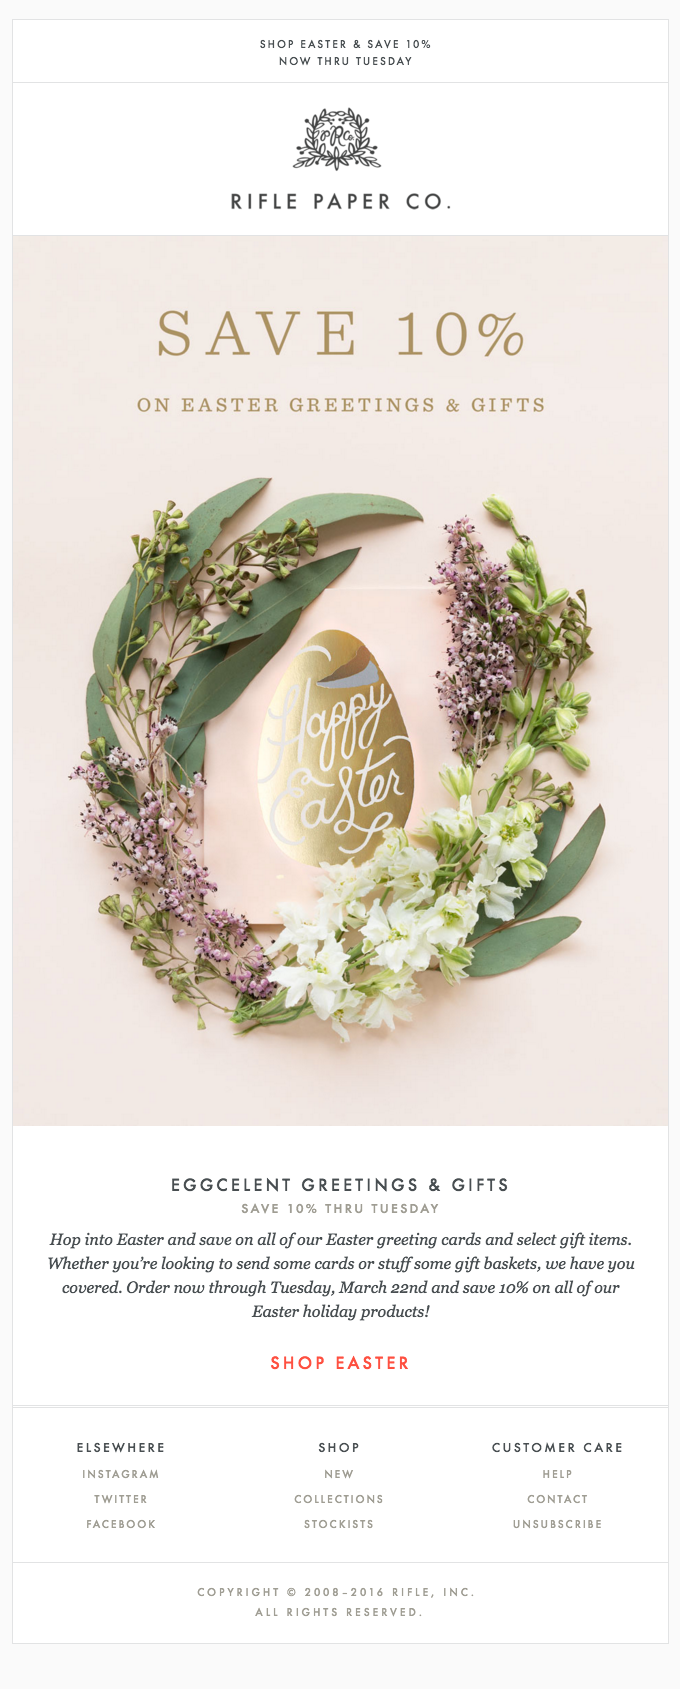 Eggcelent Greetings & Gifts for Easter